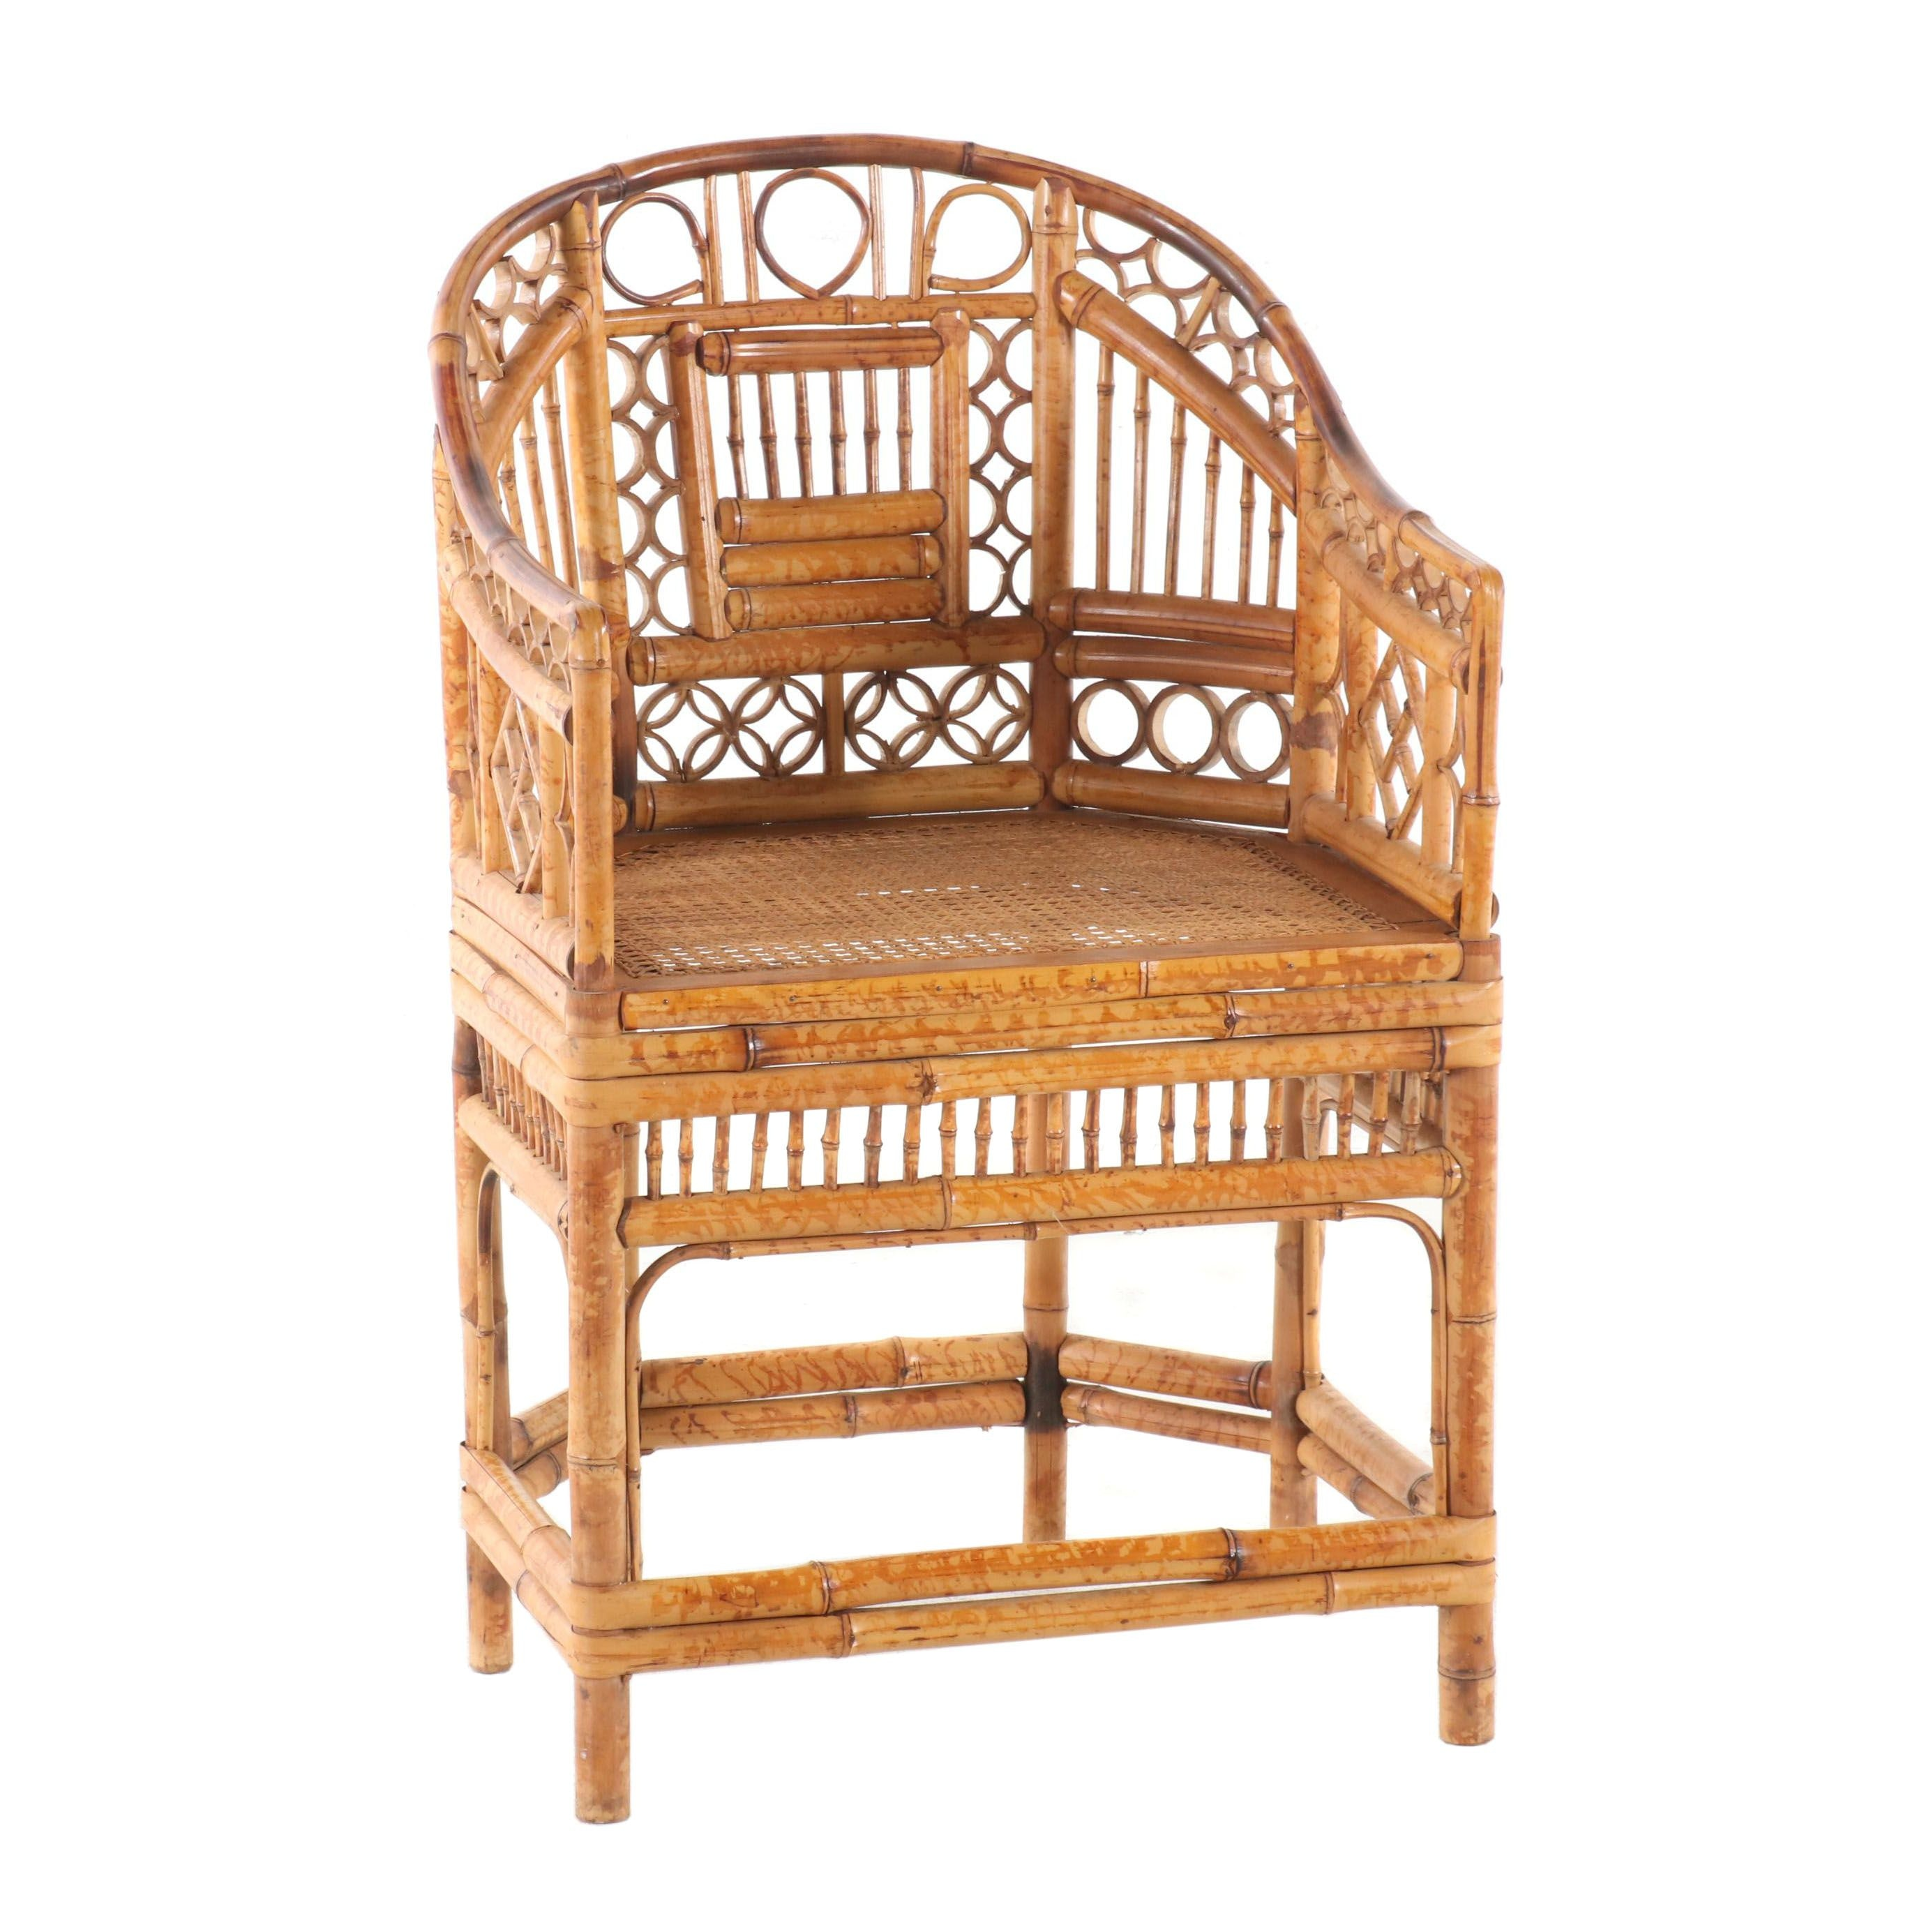 Chinese Bamboo Roundback Armchair, Mid 20th Century